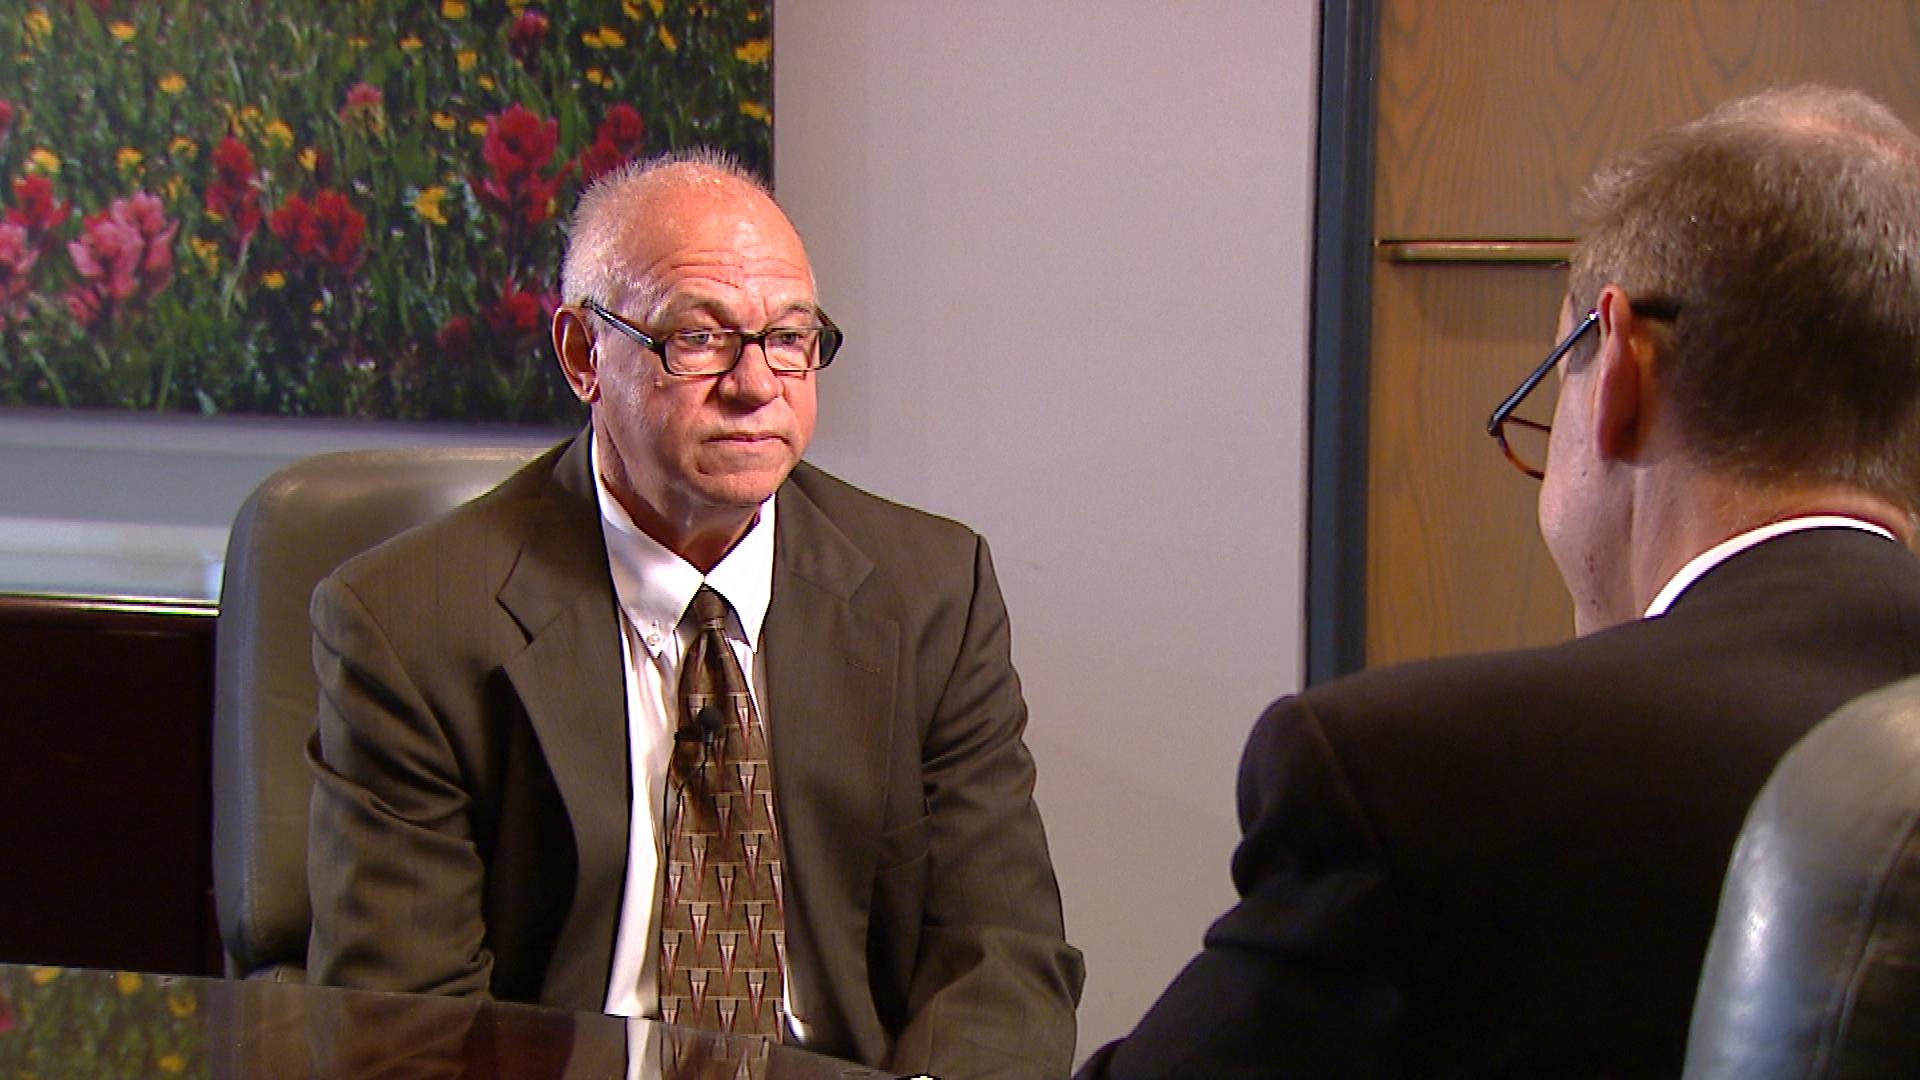 CBS4's Brian Maass talks with DOC Interim Executive Director Roger Werholtz (credit: CBS)